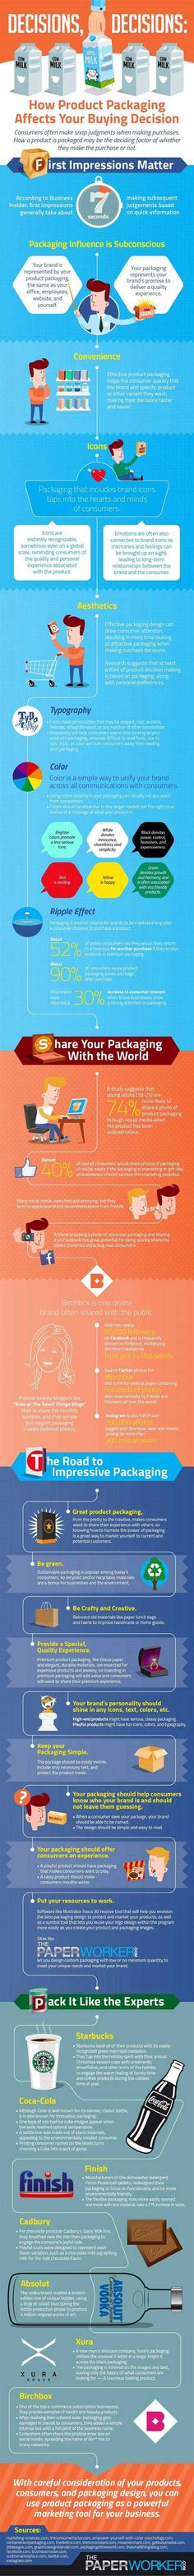 Customer Behavior - How Product Packaging Affects Buying Decisions [Infographic] : MarketingProfs Article